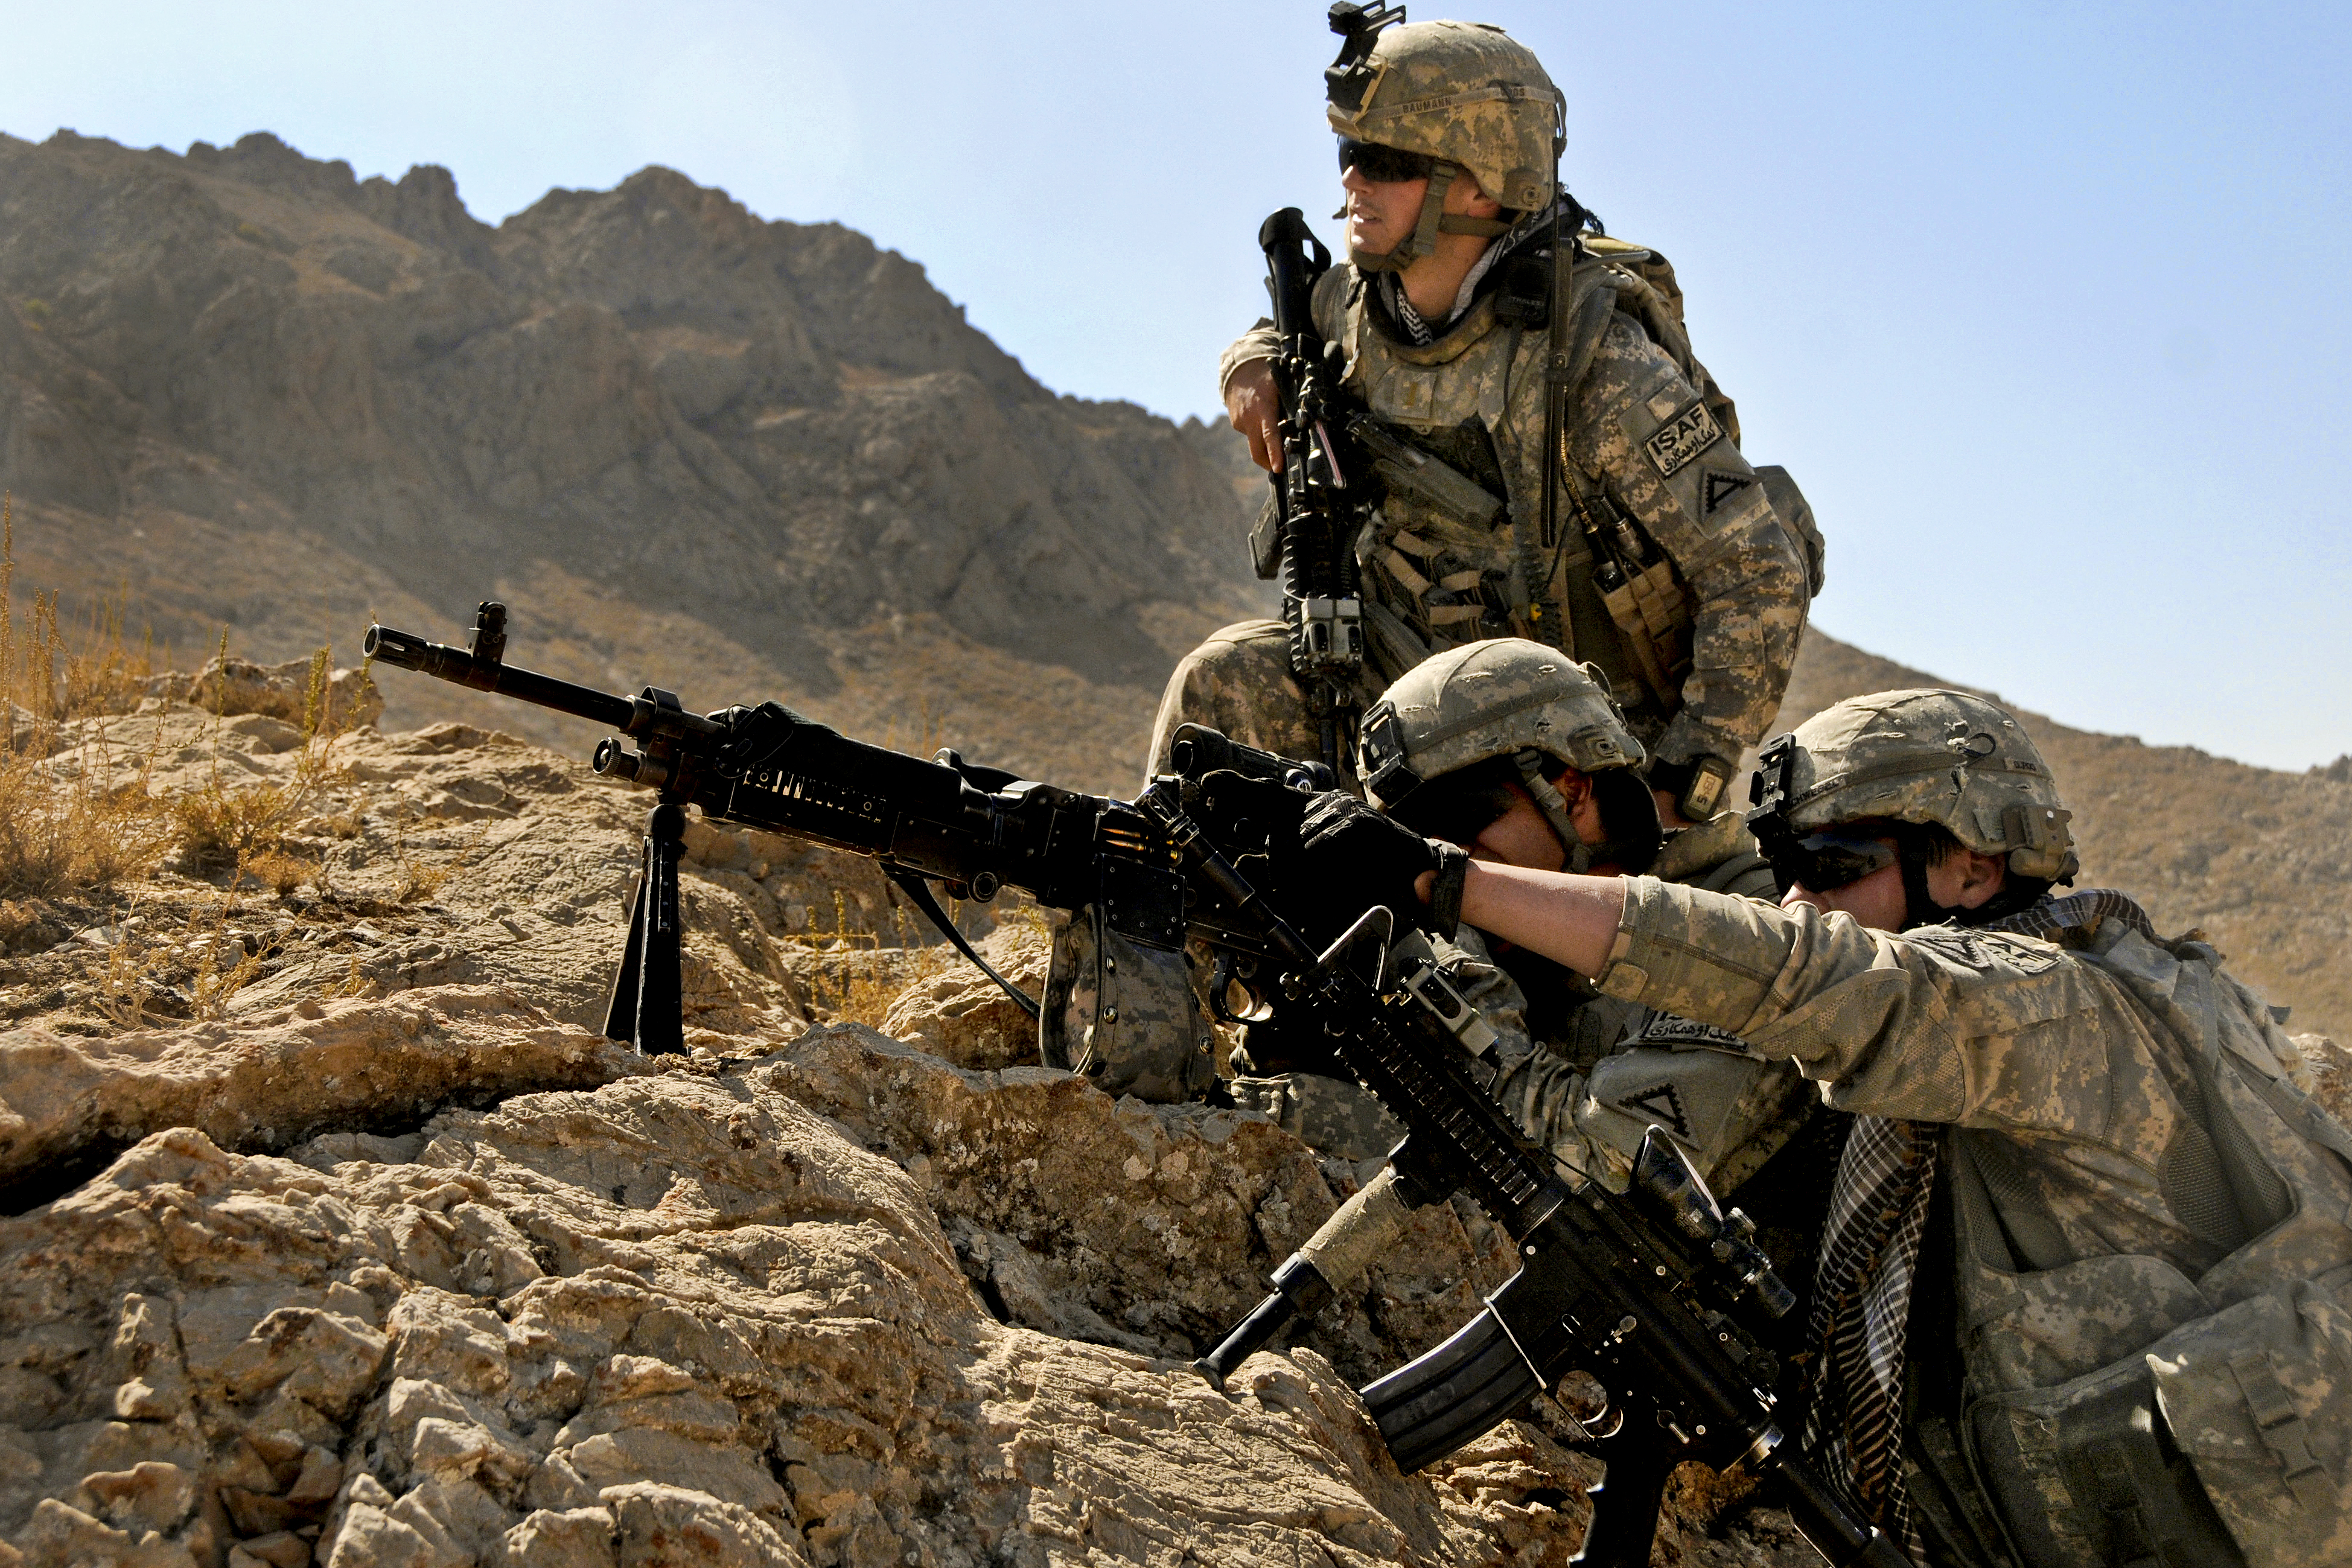 File:Flickr - The U.S. Army - Area reconnaissance.jpg - Wikimedia ...